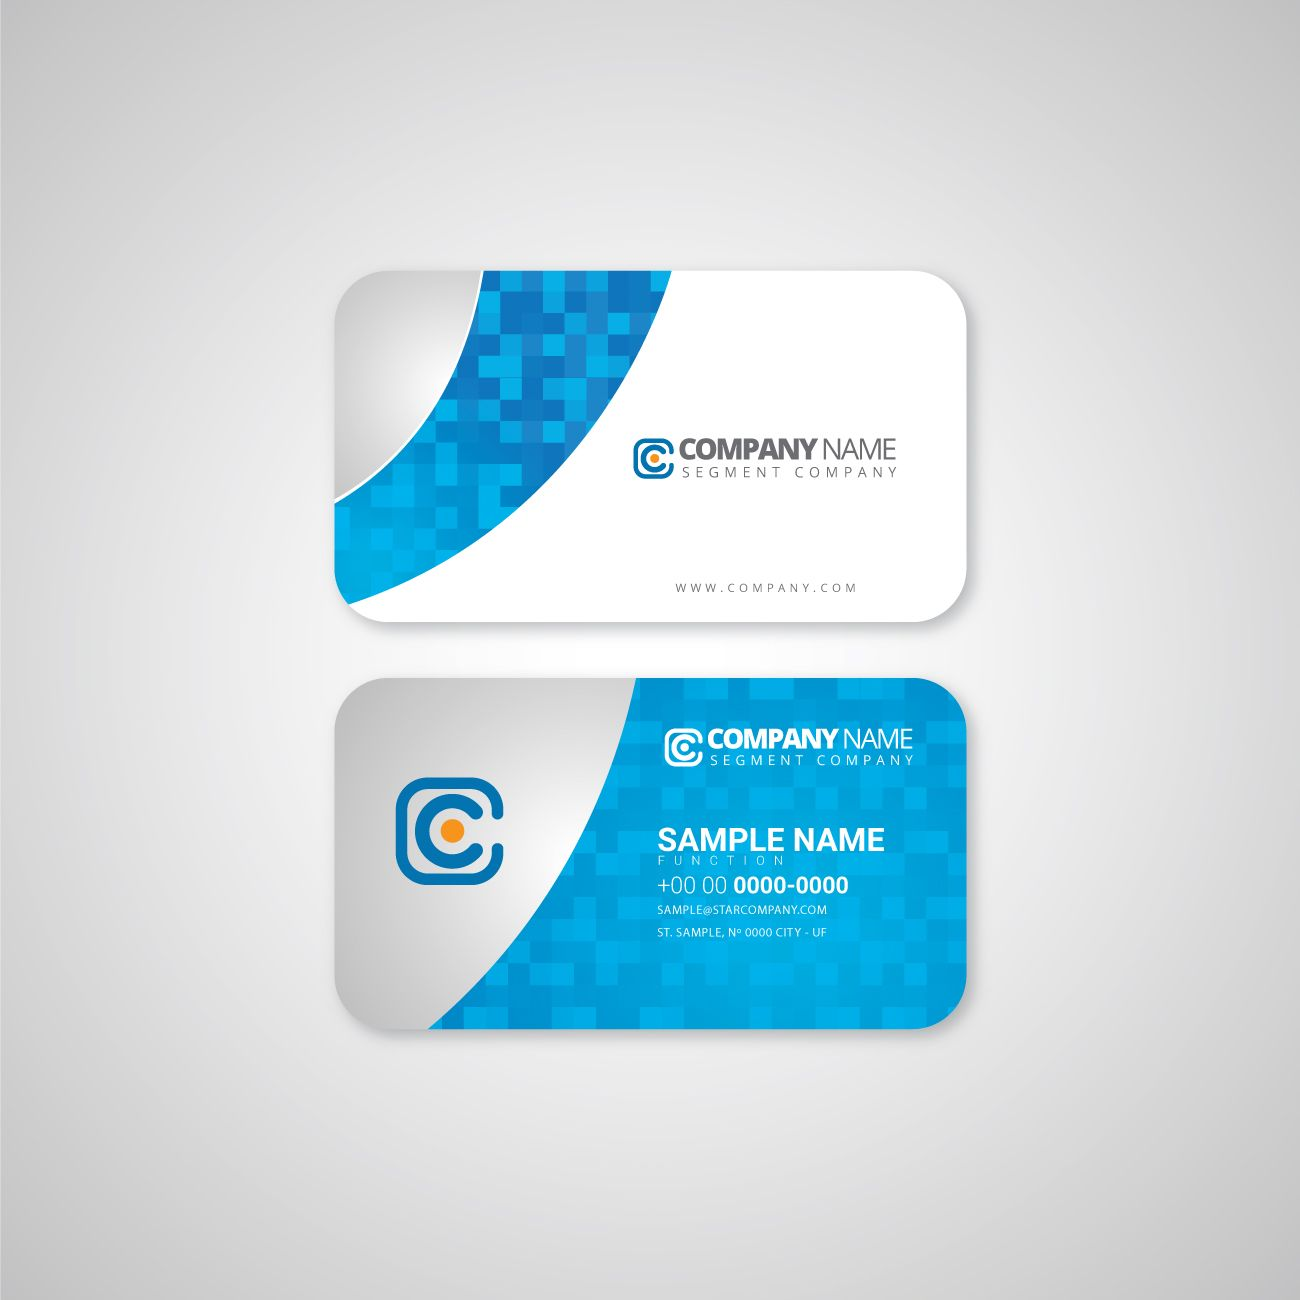 Pin By Hanif Himu On Visiting Card Sample Business Cards Business Card Template Design Business Card Template